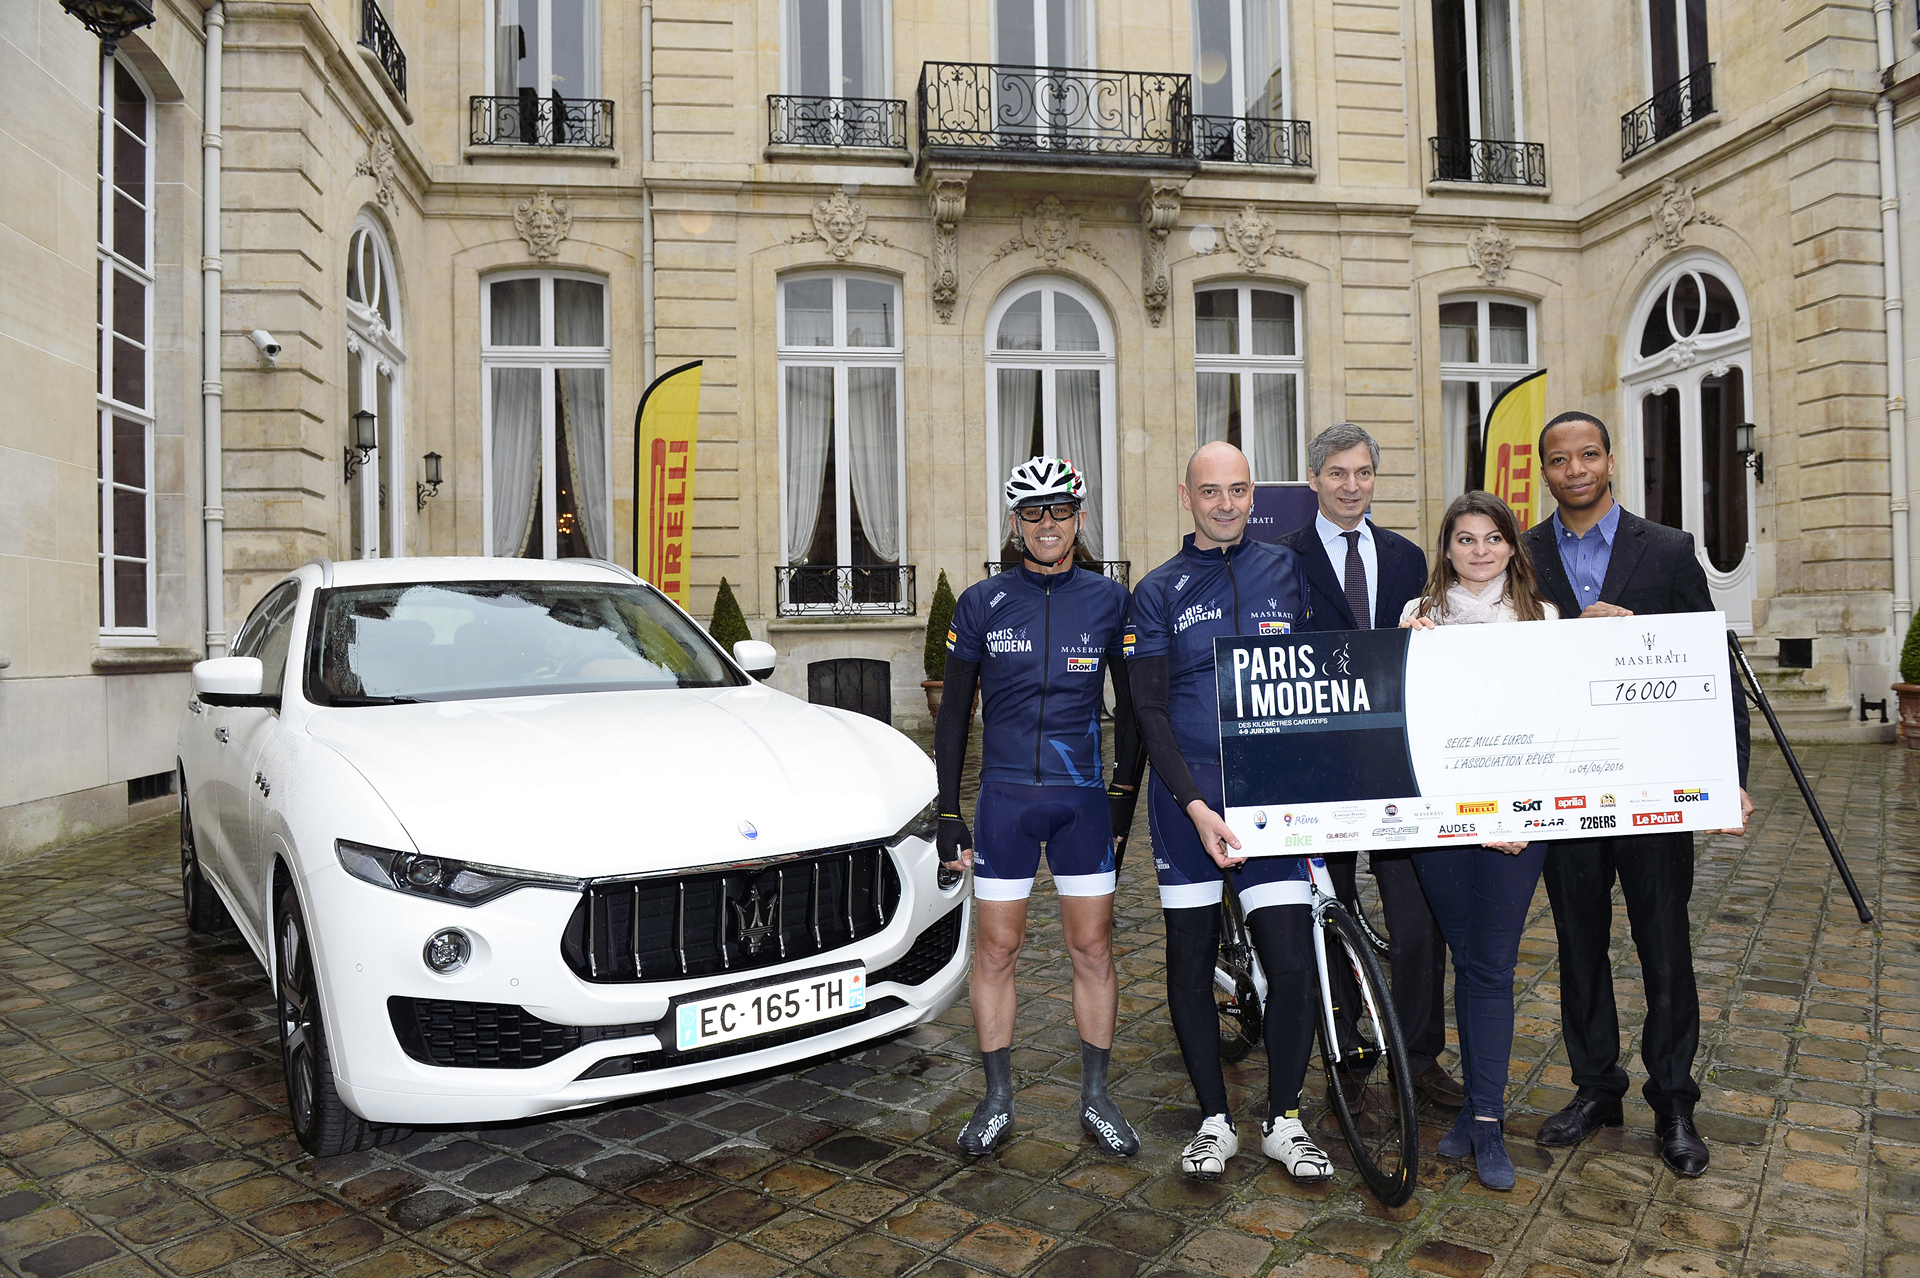 From left Paul Belmondo, Guido Giovannelli, Giandomenico Magliano, Isabelle Juseranol and Jean-Louis Gançon representing Rêves pose next to the new Maserati Levante SUV and the Paris-Modena special edition Look bike © Fiat Chrysler Automobiles N.V.